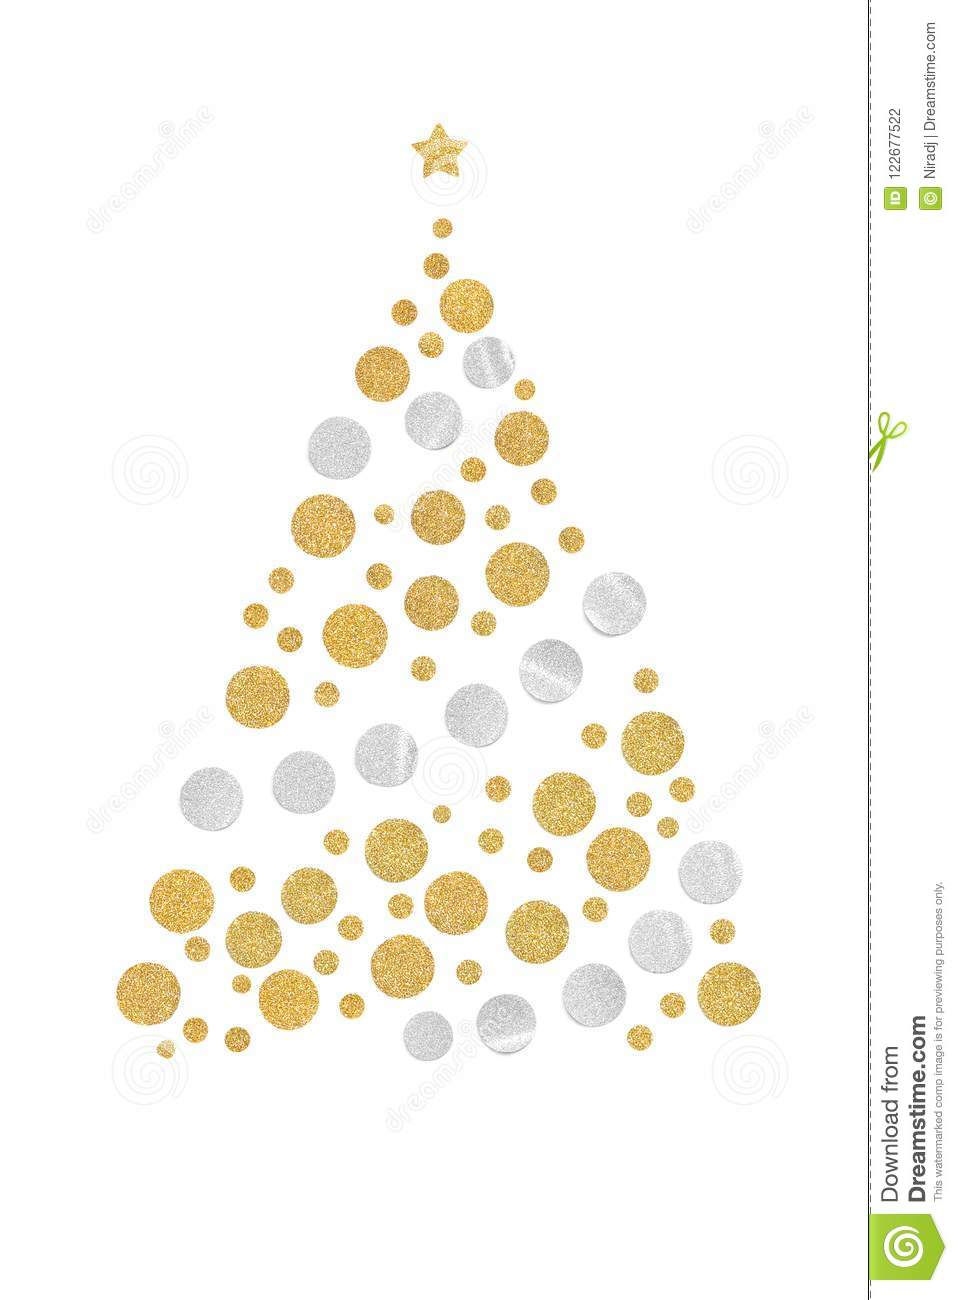 Gold and silver glitter christmas tree paper cut on white background